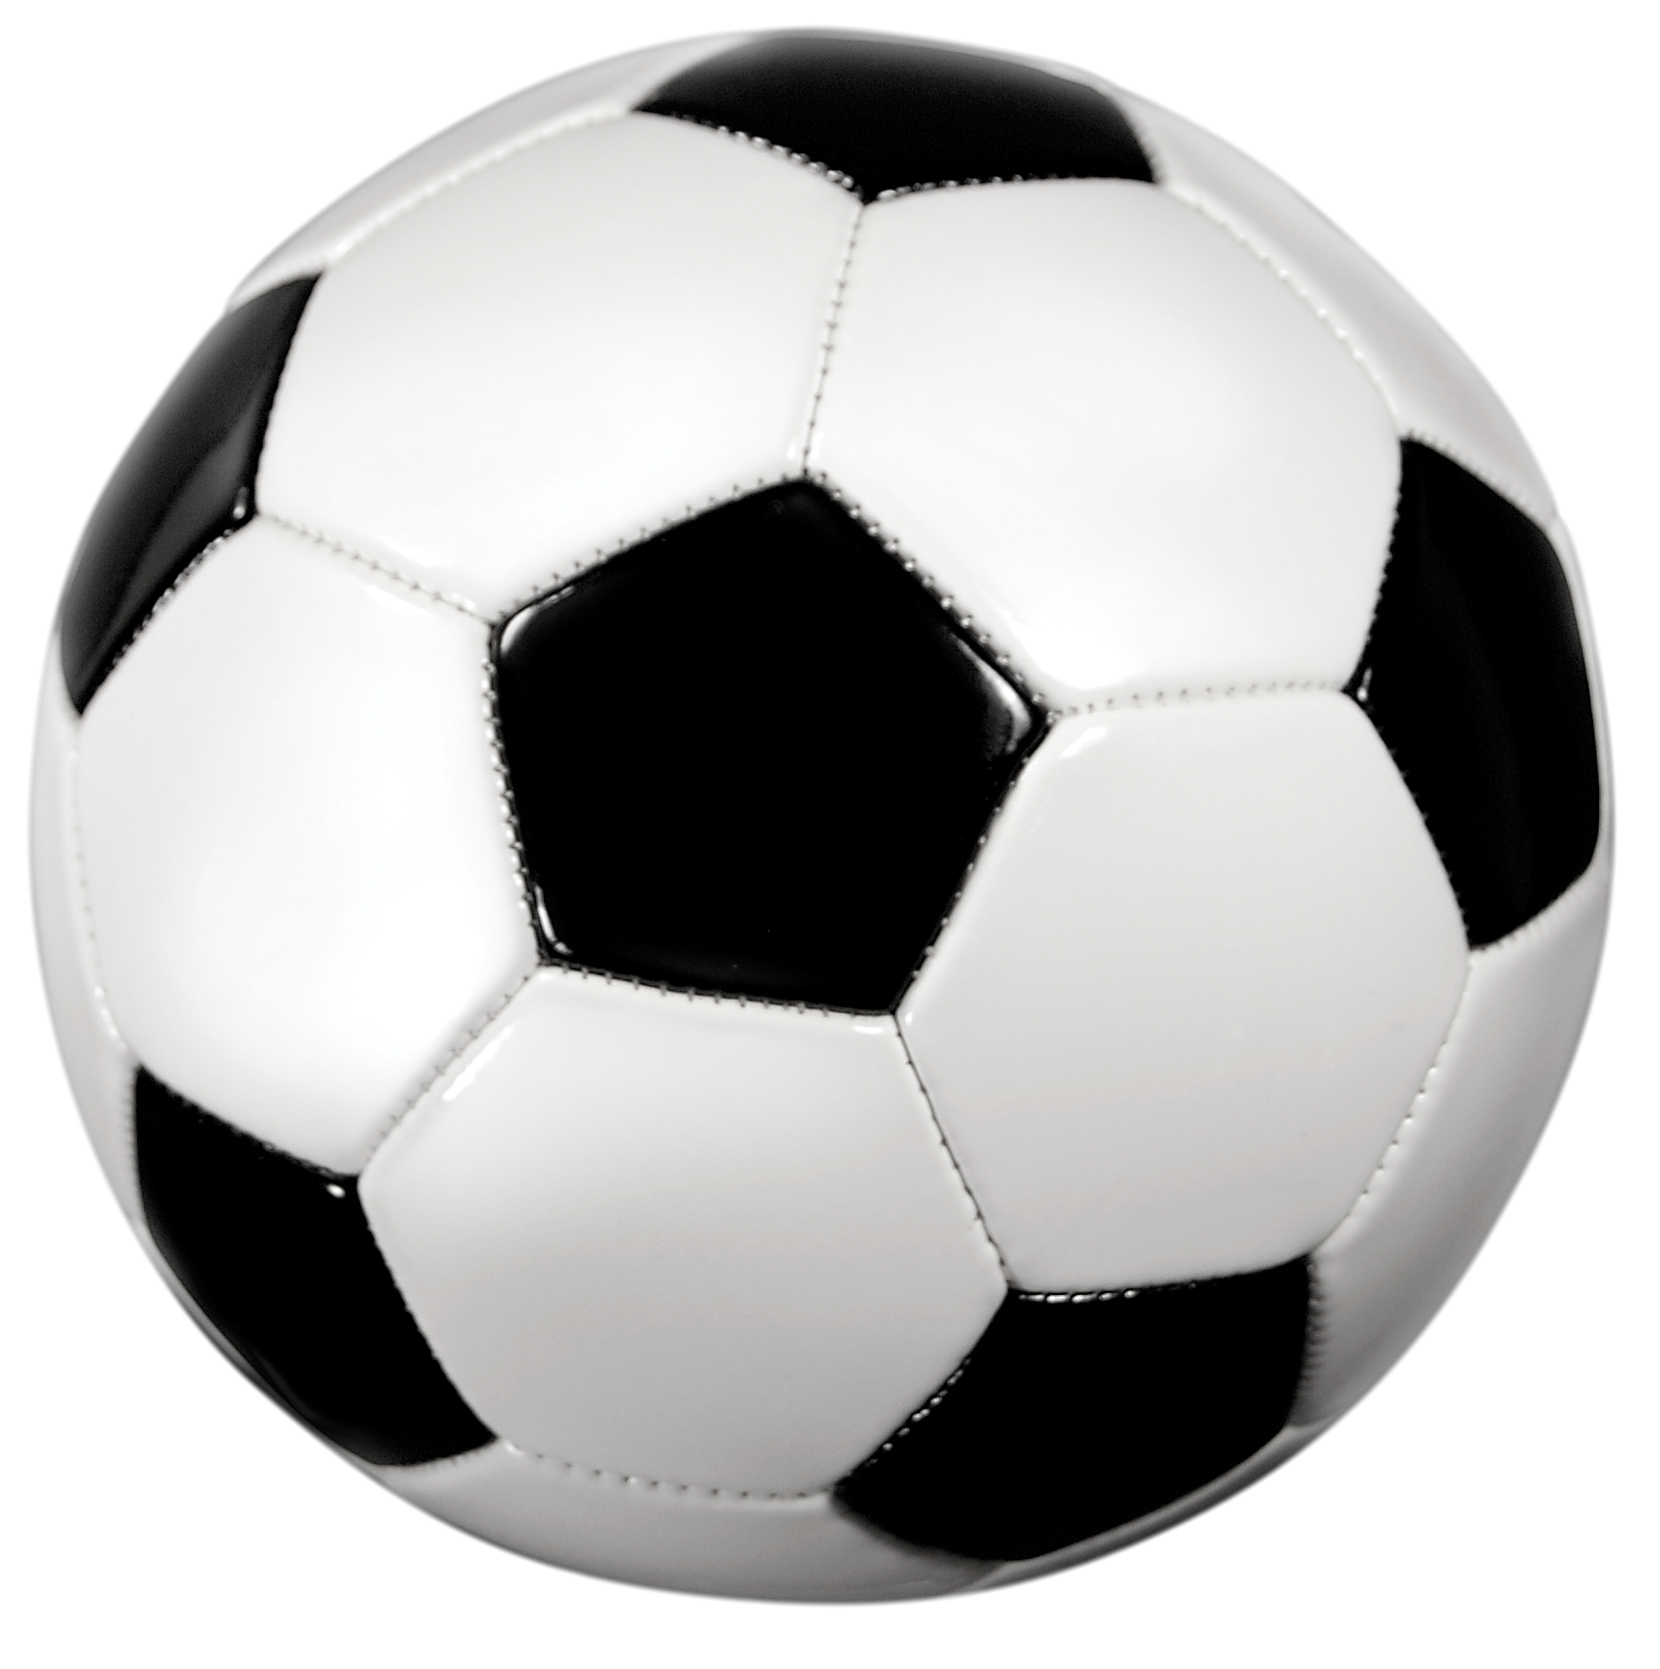 Soccer ball png clear background. Transparent arts